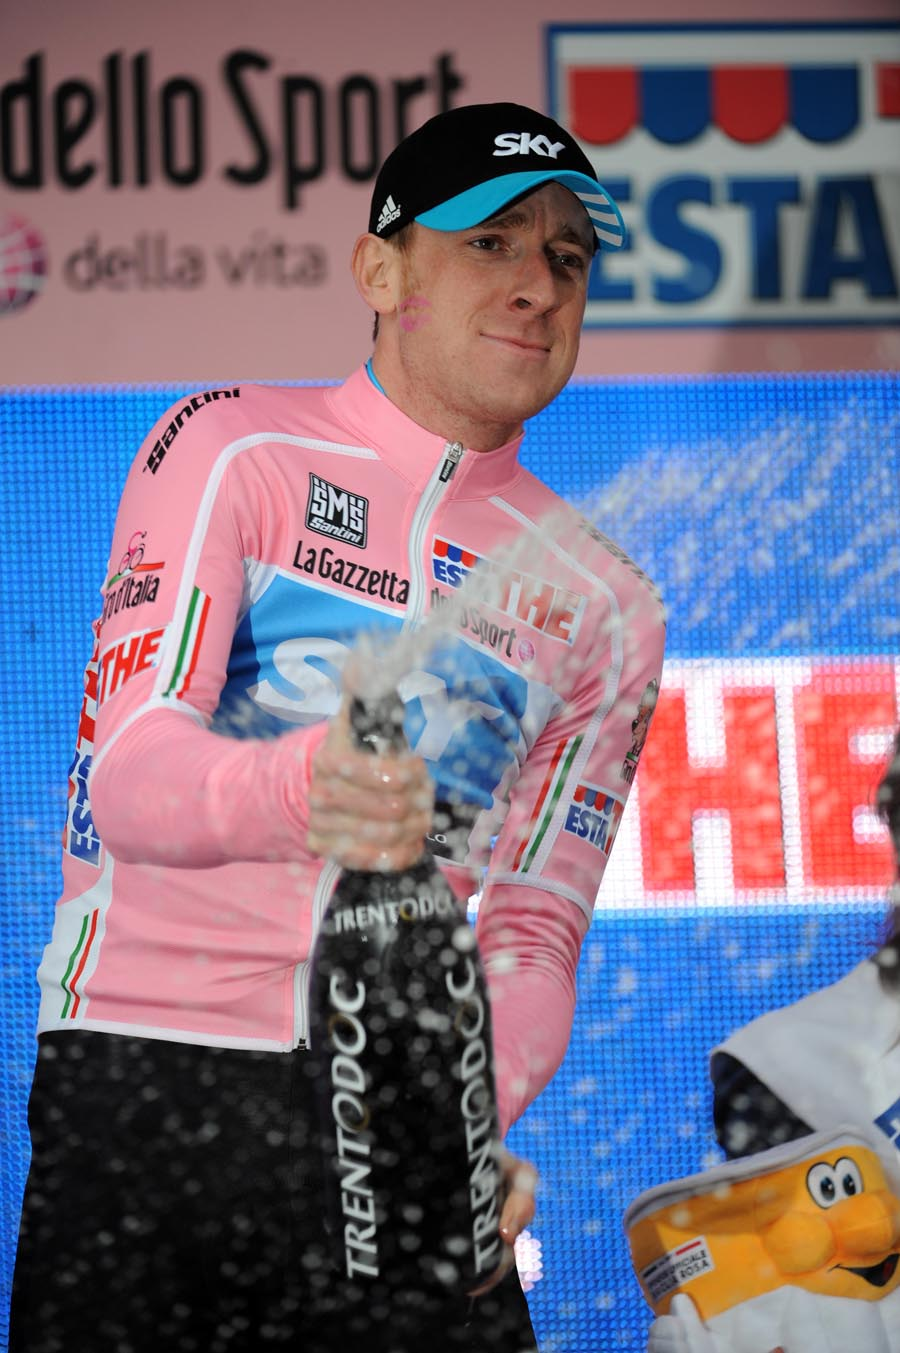 Wiggins Giro pink jersey stage one